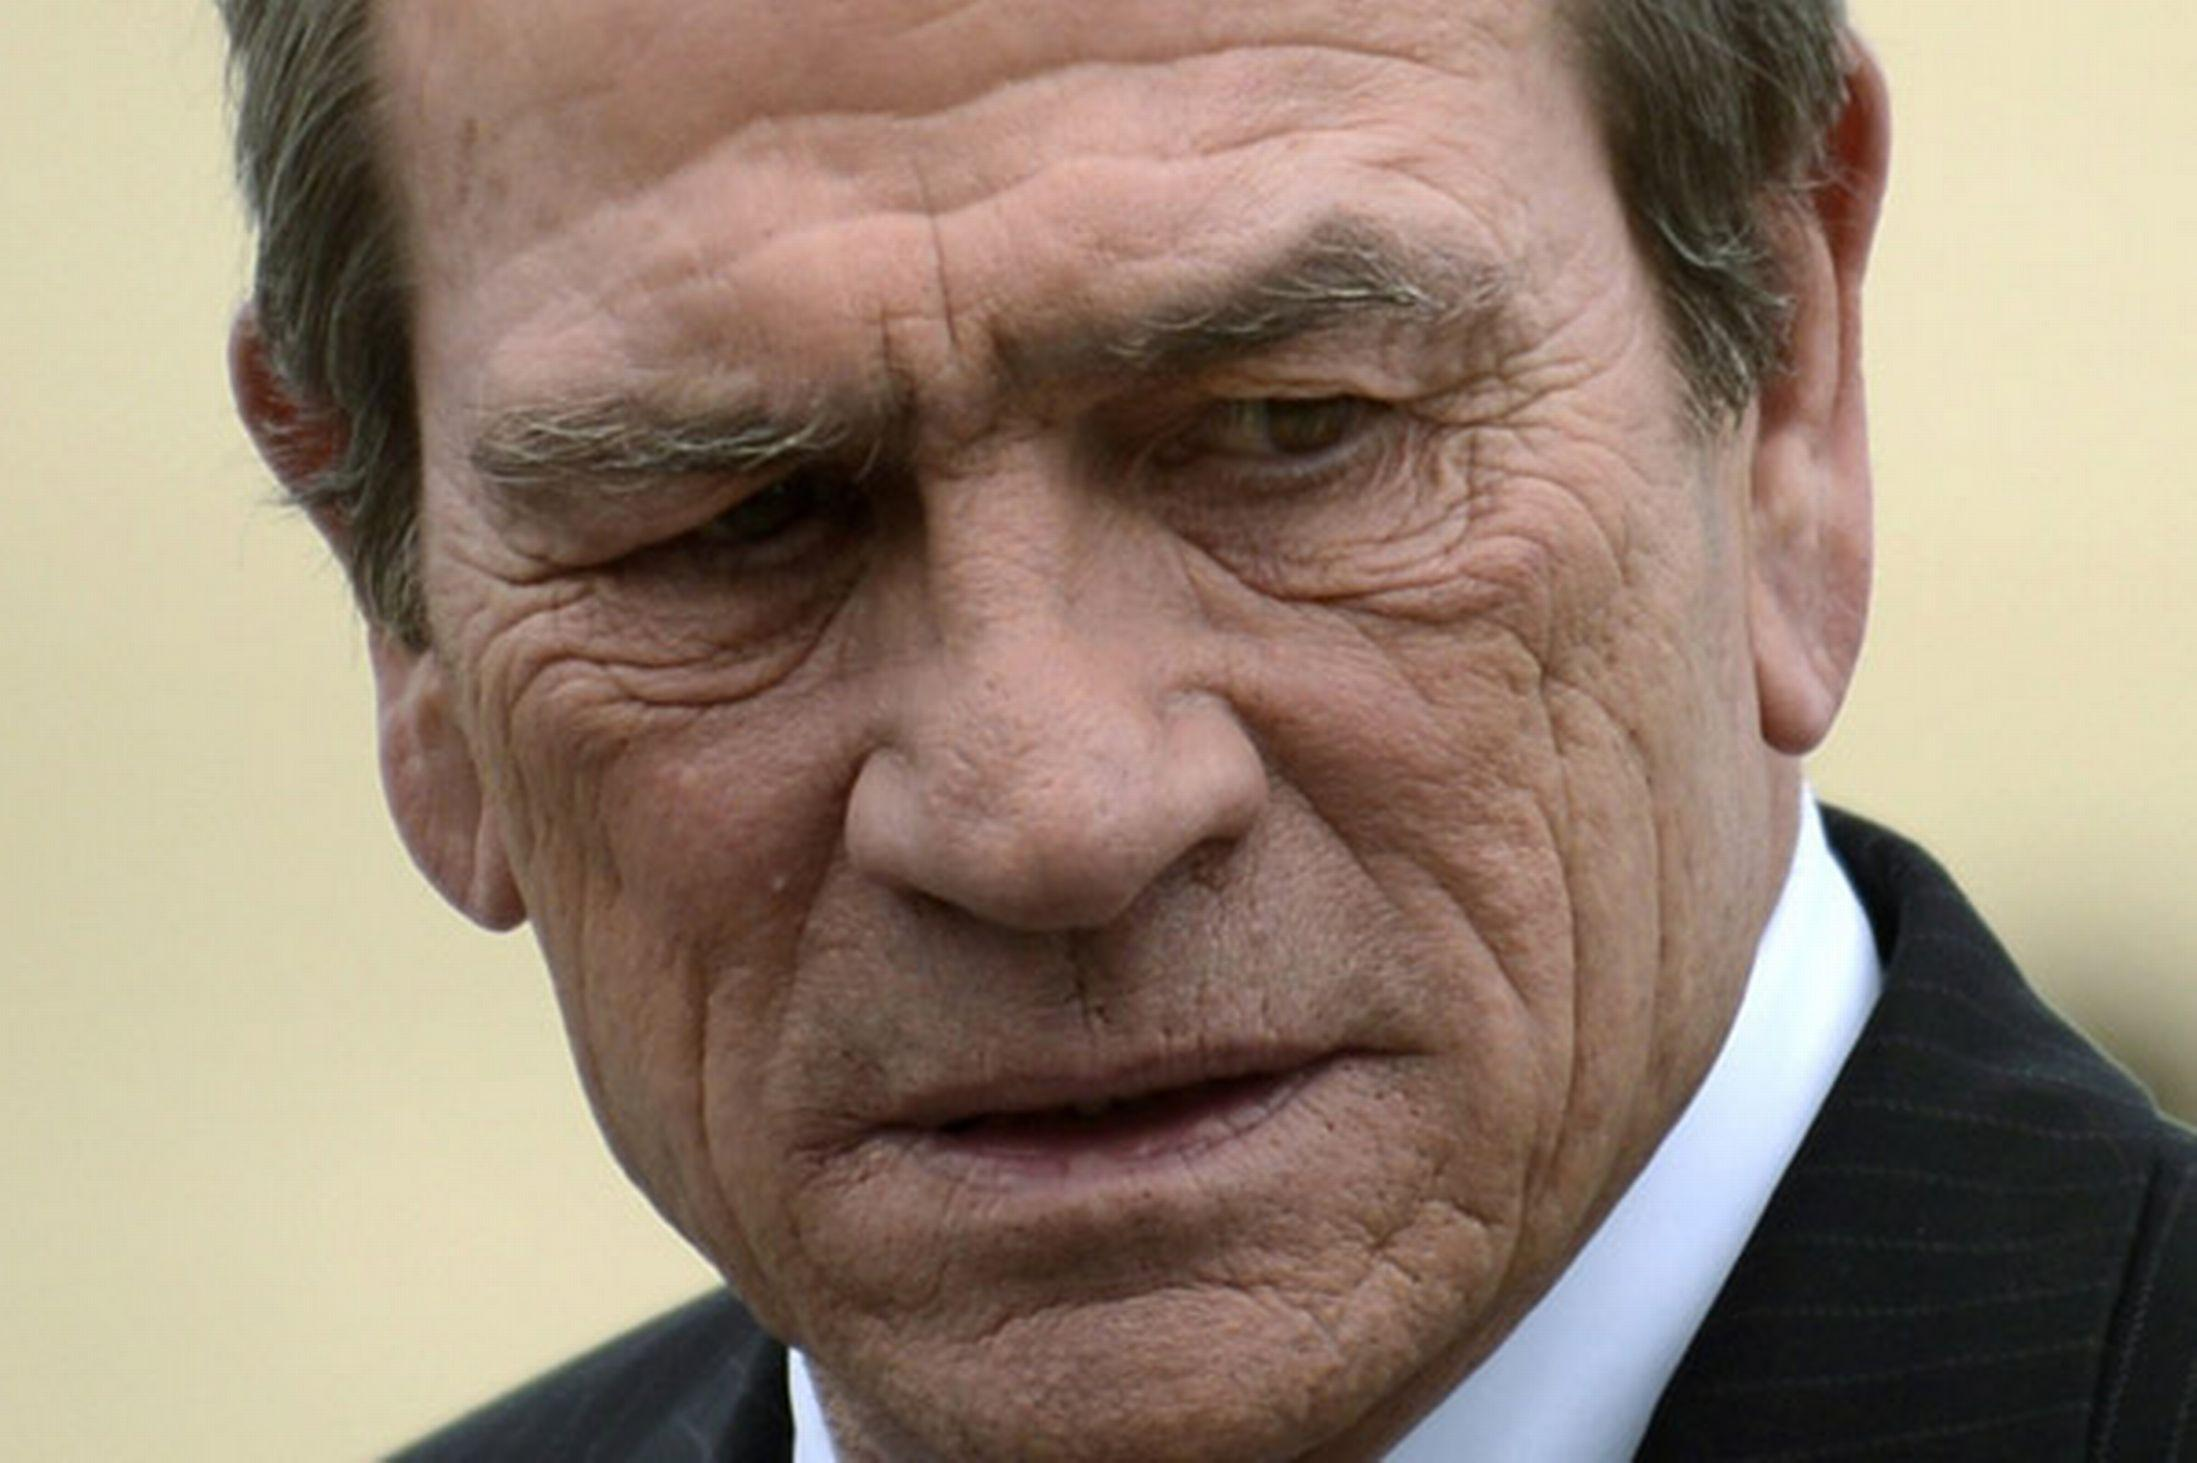 New Tommy Lee Jones Background View #956680 Wallpapers | RiseWLP